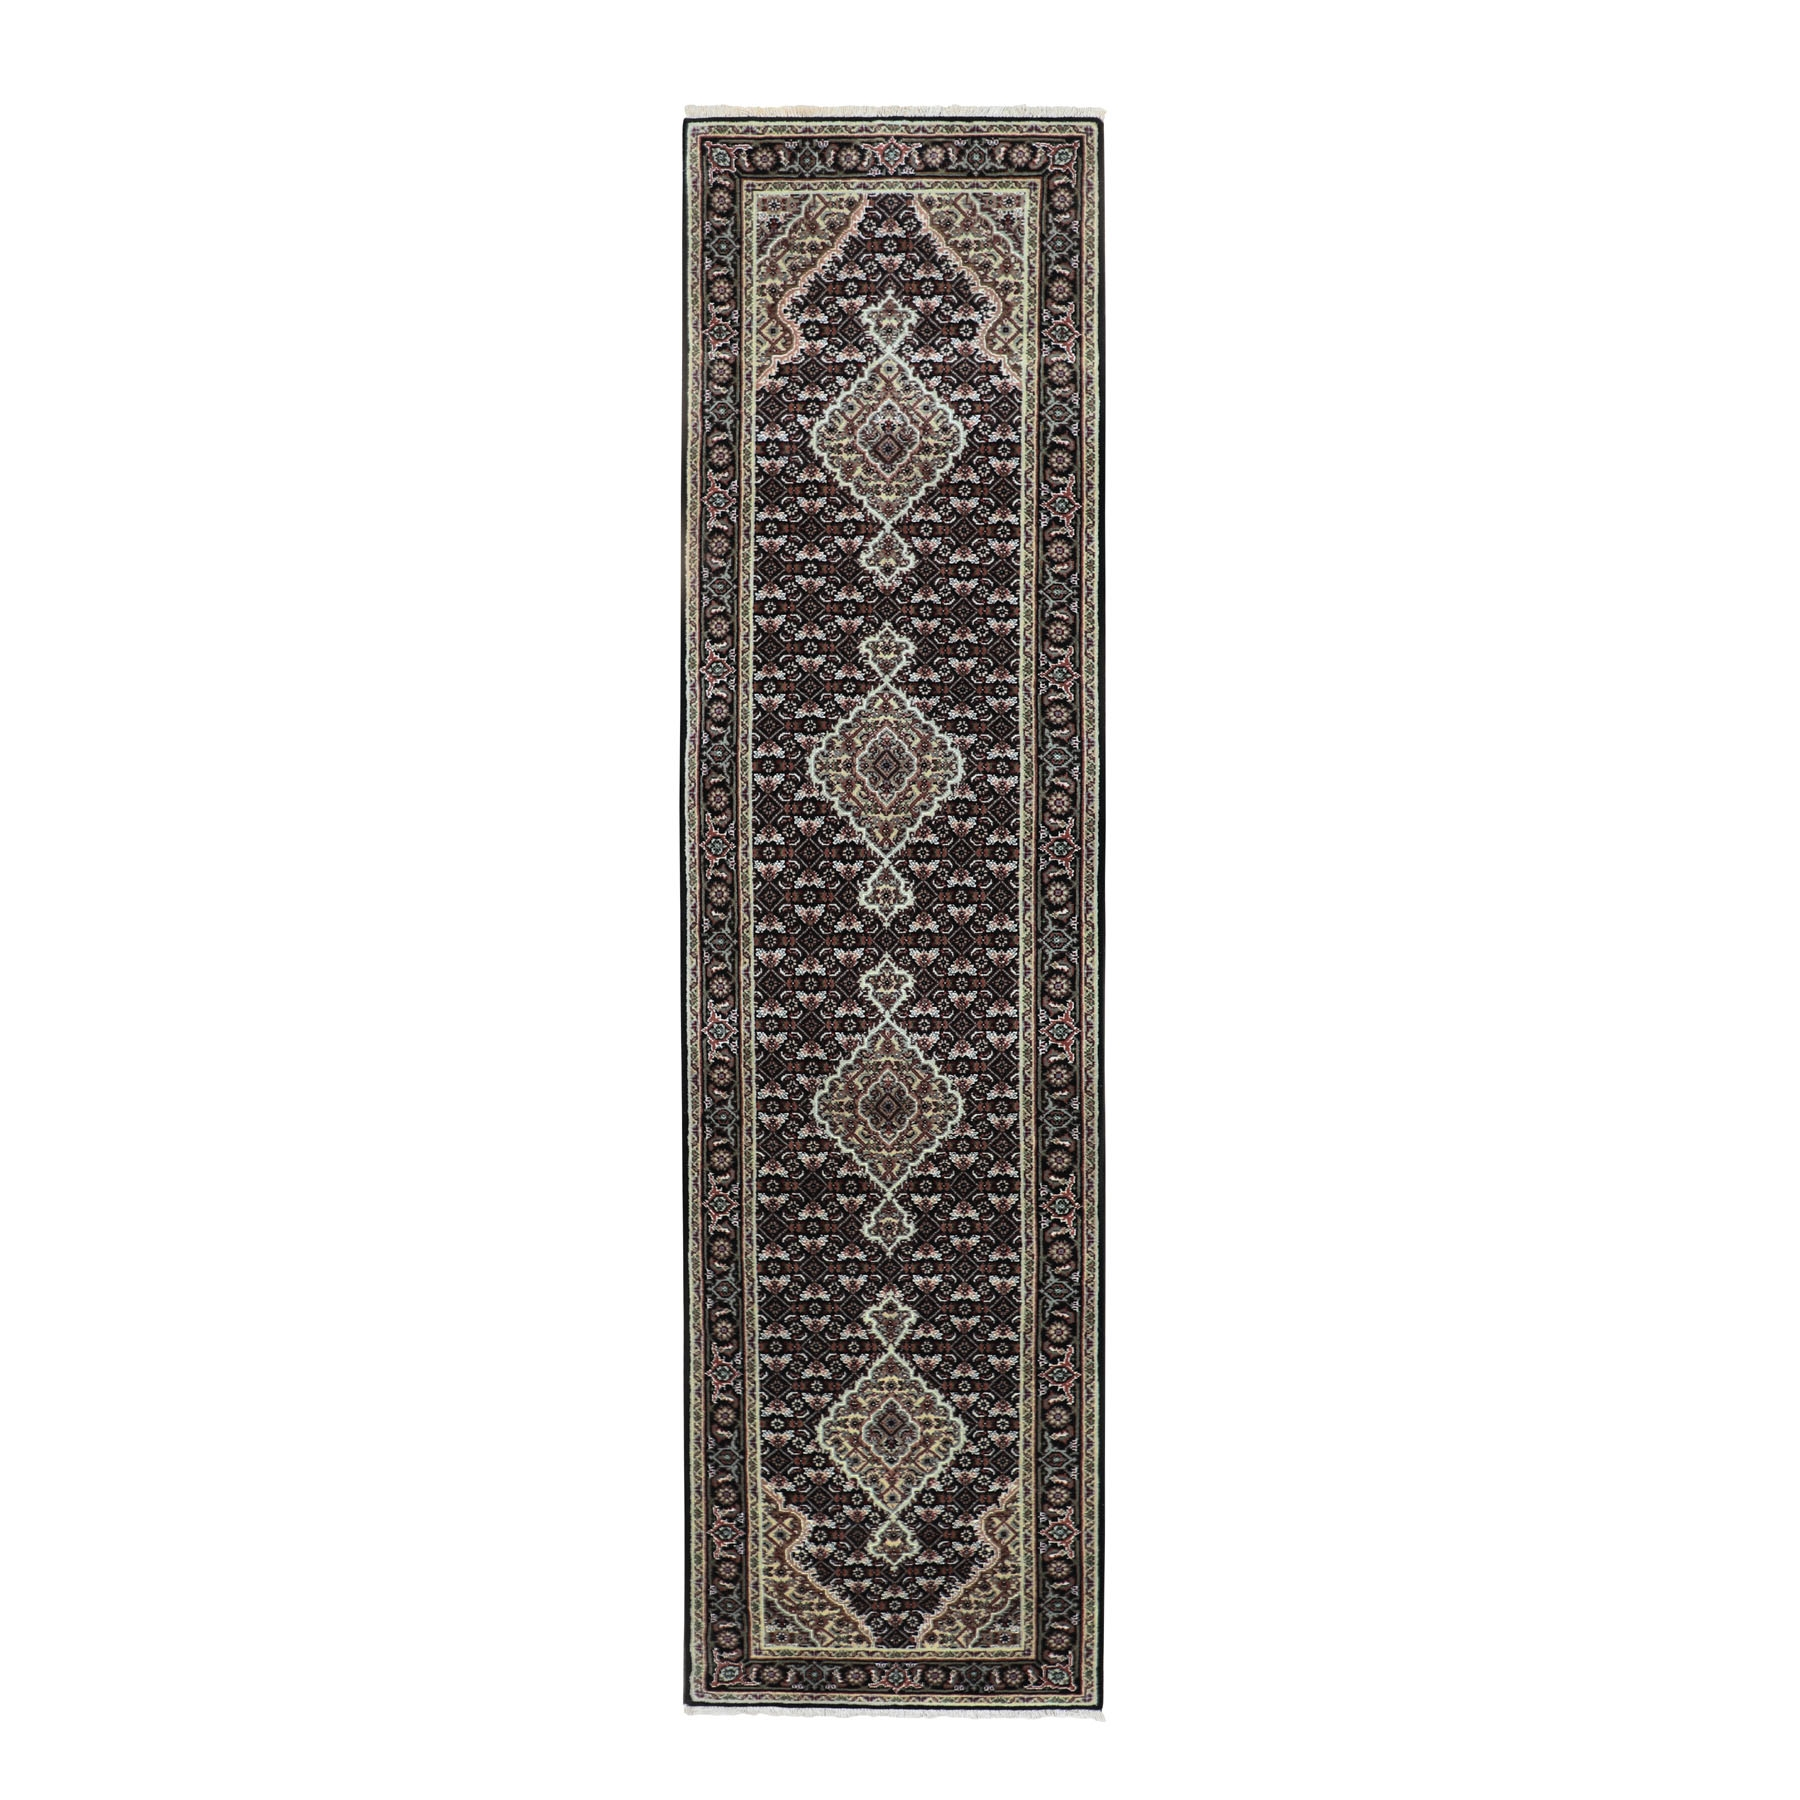 Pirniakan Collection Hand Knotted Black Rug No: 01116618